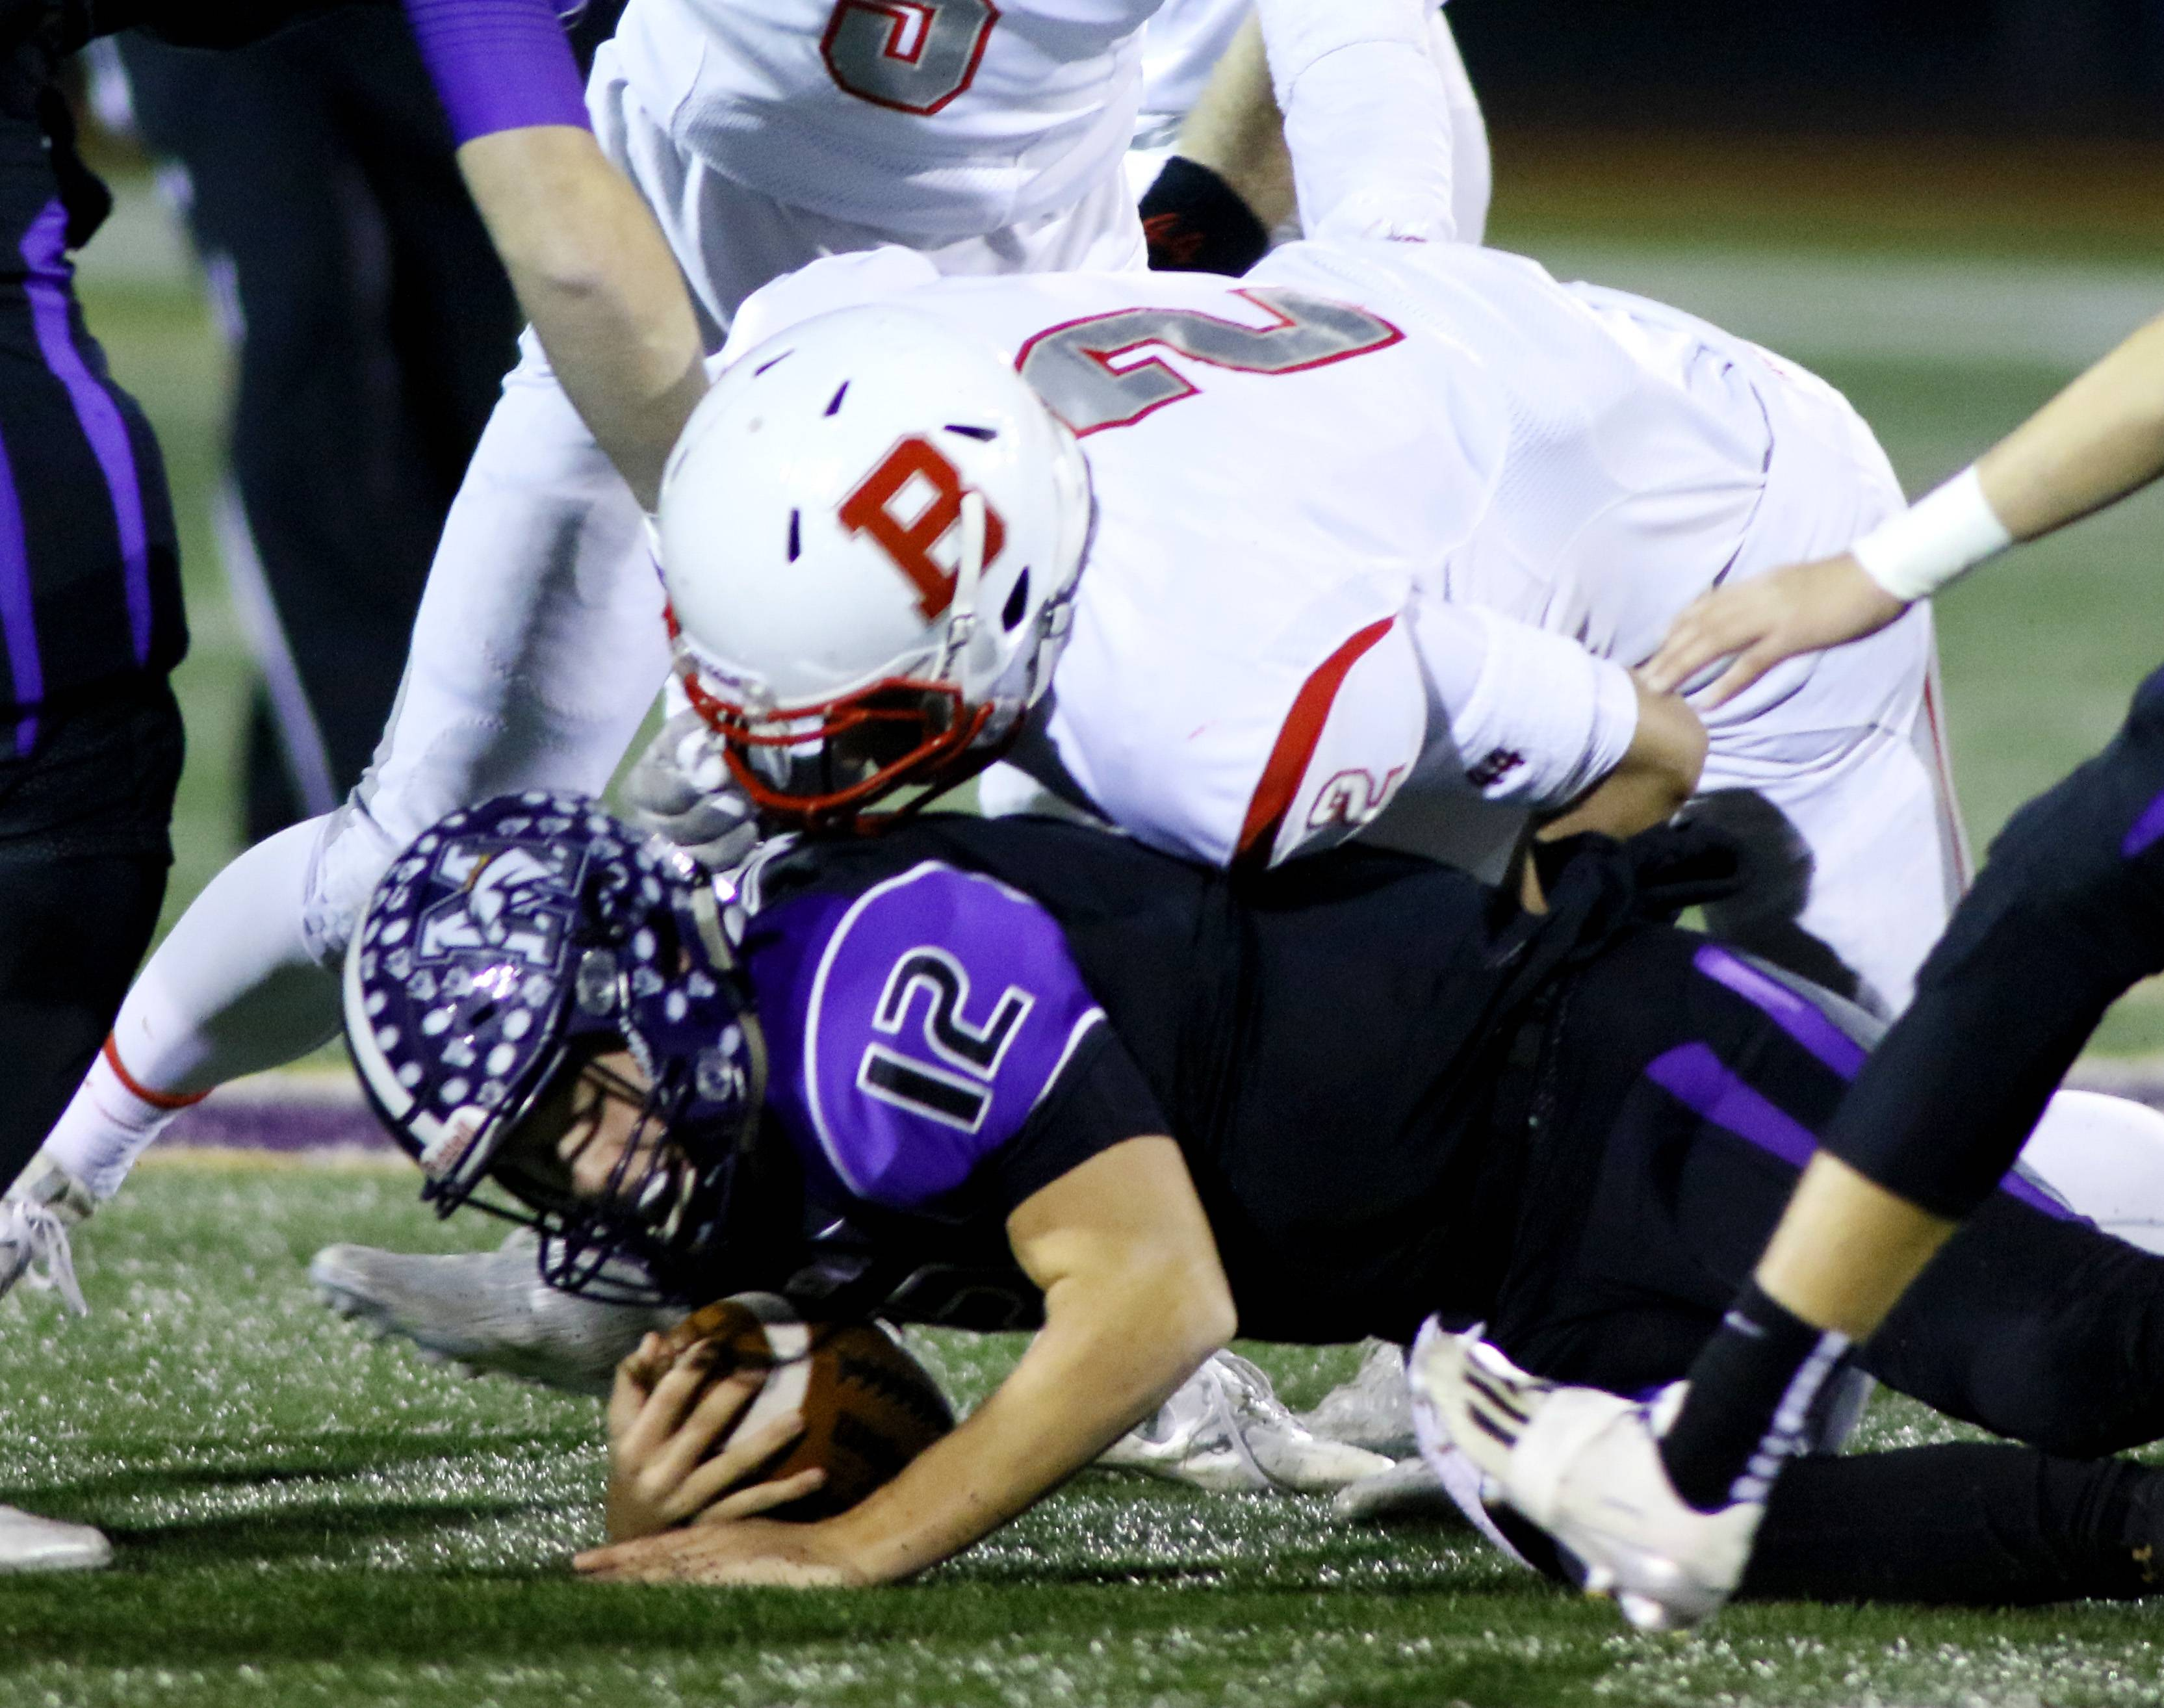 Rolling Meadows quarterback Asher O'Hara (12) is brought down by Benet Academy's Danny O'Malley (2) during first half action against Rolling Meadows during Class 7A football action in Rolling Meadows.